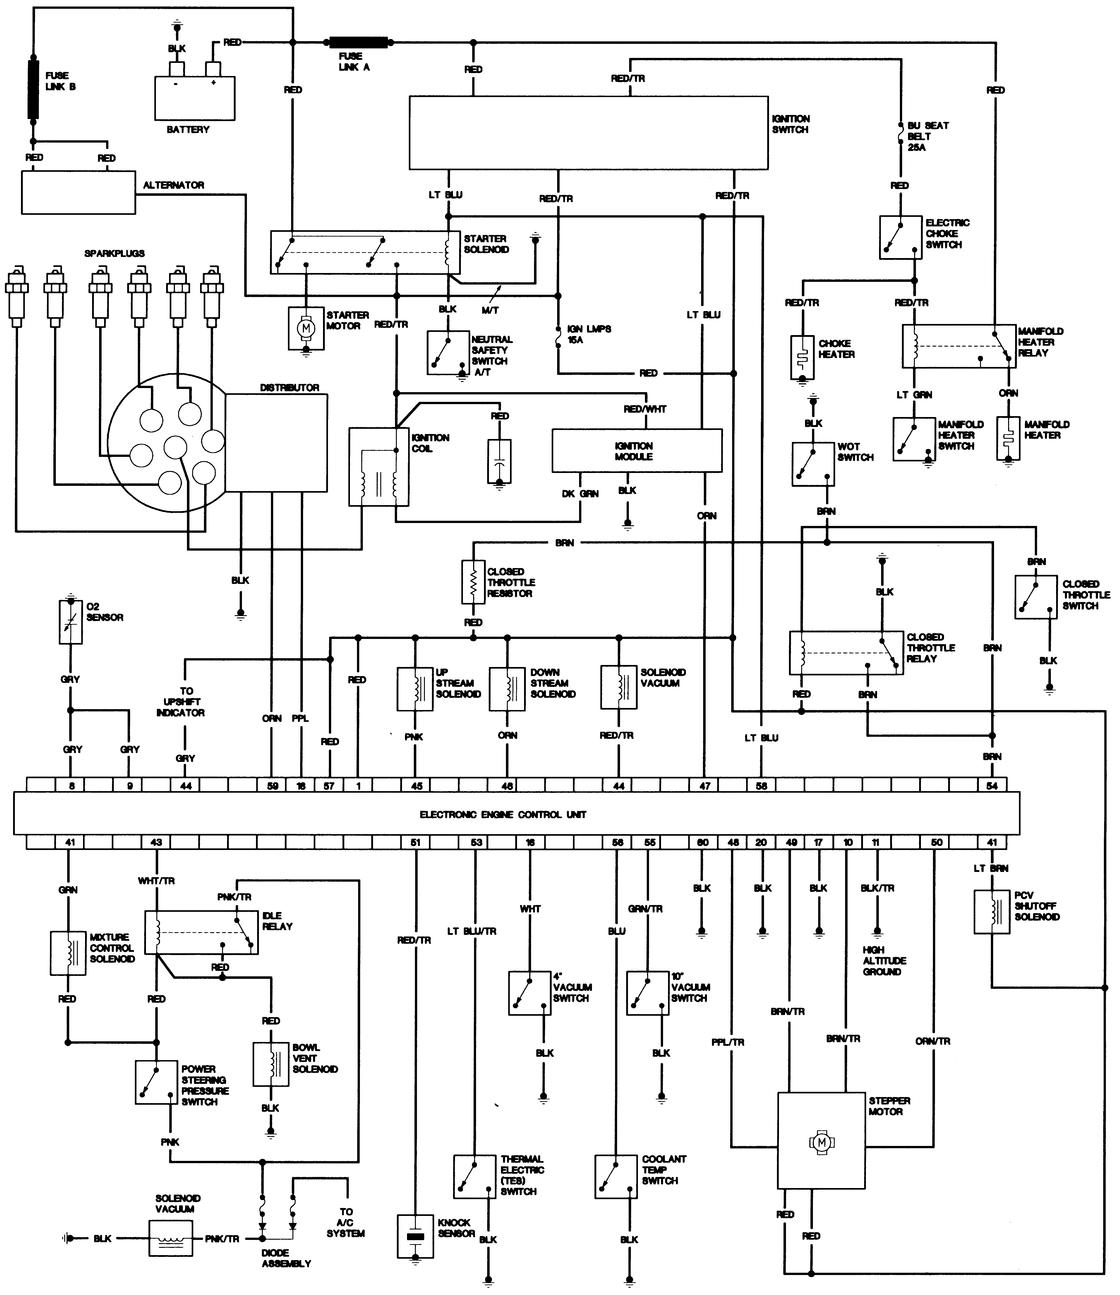 cj7 amc 258 wiring diagram